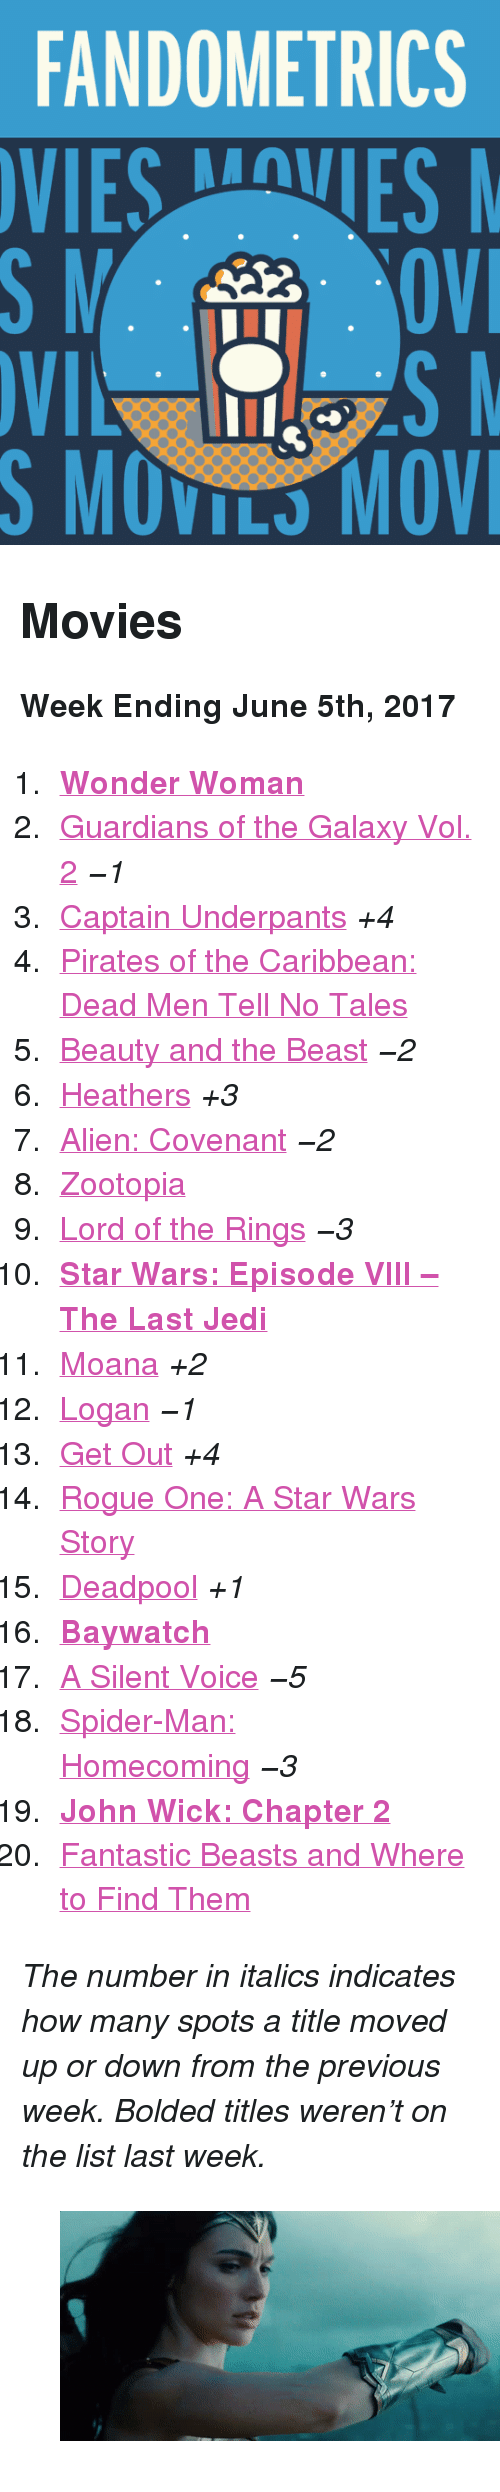 """rogue-one: FANDOMETRICS  VIESVES  S MOVILS MOV <h2>Movies</h2><p><b>Week Ending June 5th, 2017</b></p><ol><li><a href=""""http://tumblr.co/61318YhNl""""><b>Wonder Woman</b></a></li><li><a href=""""http://tumblr.co/61338YhNW"""">Guardians of the Galaxy Vol. 2</a><i><i>−1</i></i></li><li><a href=""""http://tumblr.co/61348YhNo"""">Captain Underpants</a><i>+4</i></li><li><a href=""""http://tumblr.co/61358YhNU"""">Pirates of the Caribbean: Dead Men Tell No Tales</a></li><li><a href=""""http://tumblr.co/61368YhNq"""">Beauty and the Beast</a><i><i>−2</i></i></li><li><a href=""""http://tumblr.co/61378YhNS"""">Heathers</a><i>+3</i></li><li><a href=""""http://tumblr.co/61398YhNt"""">Alien: Covenant</a><i><i>−2</i></i></li><li><a href=""""http://tumblr.co/61308YhNQ"""">Zootopia</a></li><li><a href=""""http://tumblr.co/61318YhNv"""">Lord of the Rings</a><i><i>−3</i></i></li><li><a href=""""http://tumblr.co/61328YhNa""""><b>Star Wars: Episode VIII – The Last Jedi</b></a></li><li><a href=""""http://tumblr.co/61338YhNx"""">Moana</a><i>+2</i></li><li><a href=""""http://tumblr.co/61348YhNI"""">Logan</a><i><i>−1</i></i></li><li><a href=""""http://tumblr.co/61358YhNL"""">Get Out</a><i>+4</i></li><li><a href=""""http://tumblr.co/61368YhN0"""">Rogue One: A Star Wars Story</a></li><li><a href=""""http://tumblr.co/61378YhNF"""">Deadpool</a><i>+1</i></li><li><a href=""""http://tumblr.co/61388YhN2""""><b>Baywatch</b></a></li><li><a href=""""http://tumblr.co/61398YhNN"""">A Silent Voice</a><i><i>−5</i></i></li><li><a href=""""http://tumblr.co/61308YhN4"""">Spider-Man: Homecoming</a><i><i>−3</i></i></li><li><a href=""""http://tumblr.co/61318YhNf""""><b>John Wick: Chapter 2</b></a></li><li><a href=""""http://tumblr.co/61328YhNA"""">Fantastic Beasts and Where to Find Them</a></li></ol><p><i>The number in italics indicates how many spots a title moved up or down from the previous week. Bolded titles weren't on the list last week.</i></p><figure class=""""tmblr-full pinned-target"""" data-orig-height=""""222"""" data-orig-width=""""500"""" data-tumblr-attribution=""""micdotcom:6-cQ9y8rzsyHr6qZfgiEUg:Z_U6Pw2MOLGhK""""><img src=""""https://78"""